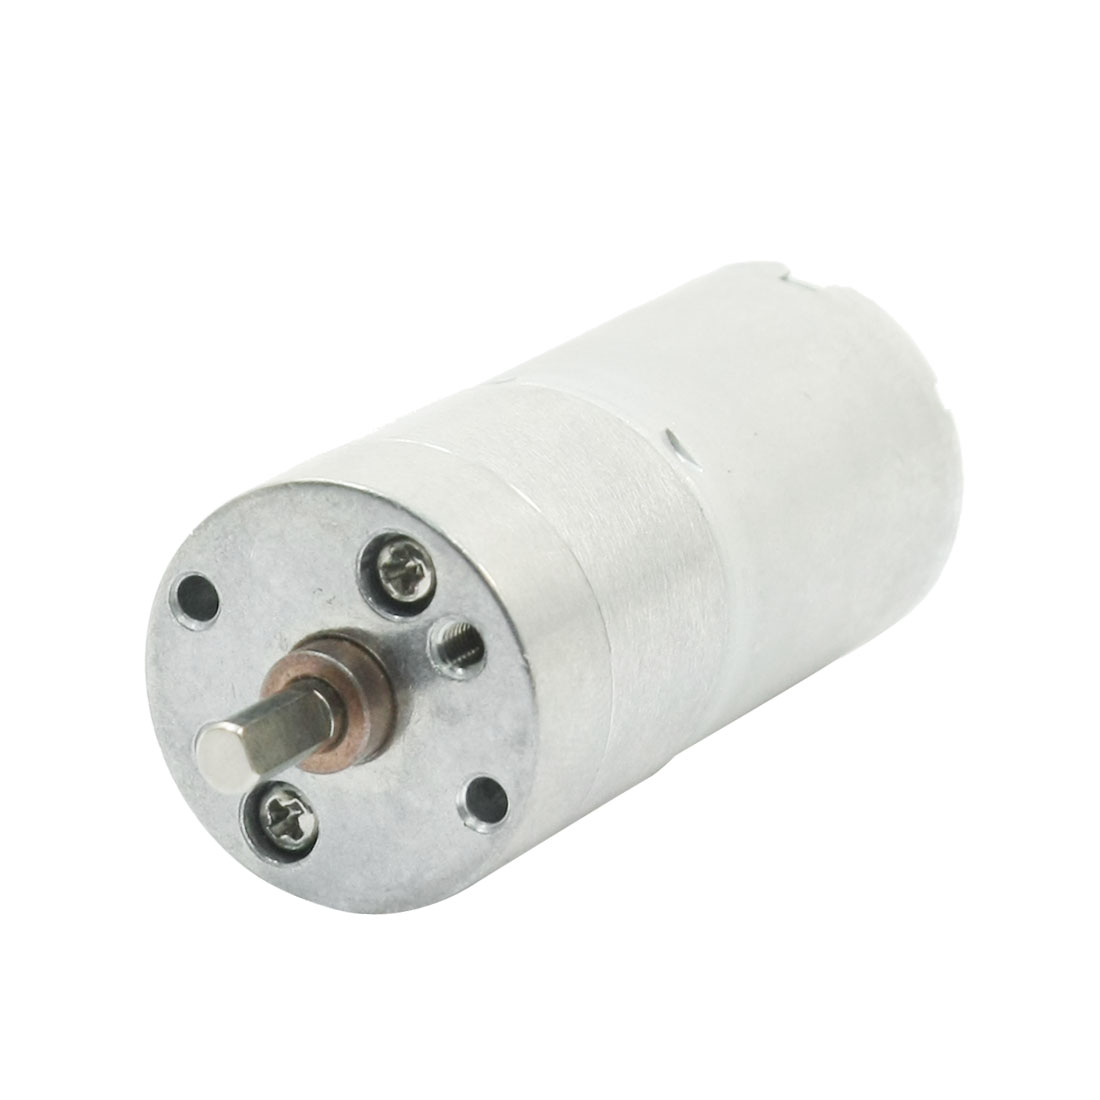 JL25A370 4mm Drive Shaft 59 r/min Output High Torque Rotary Speed Reducer Cylinder Shape Gearbox Motor DC 12V